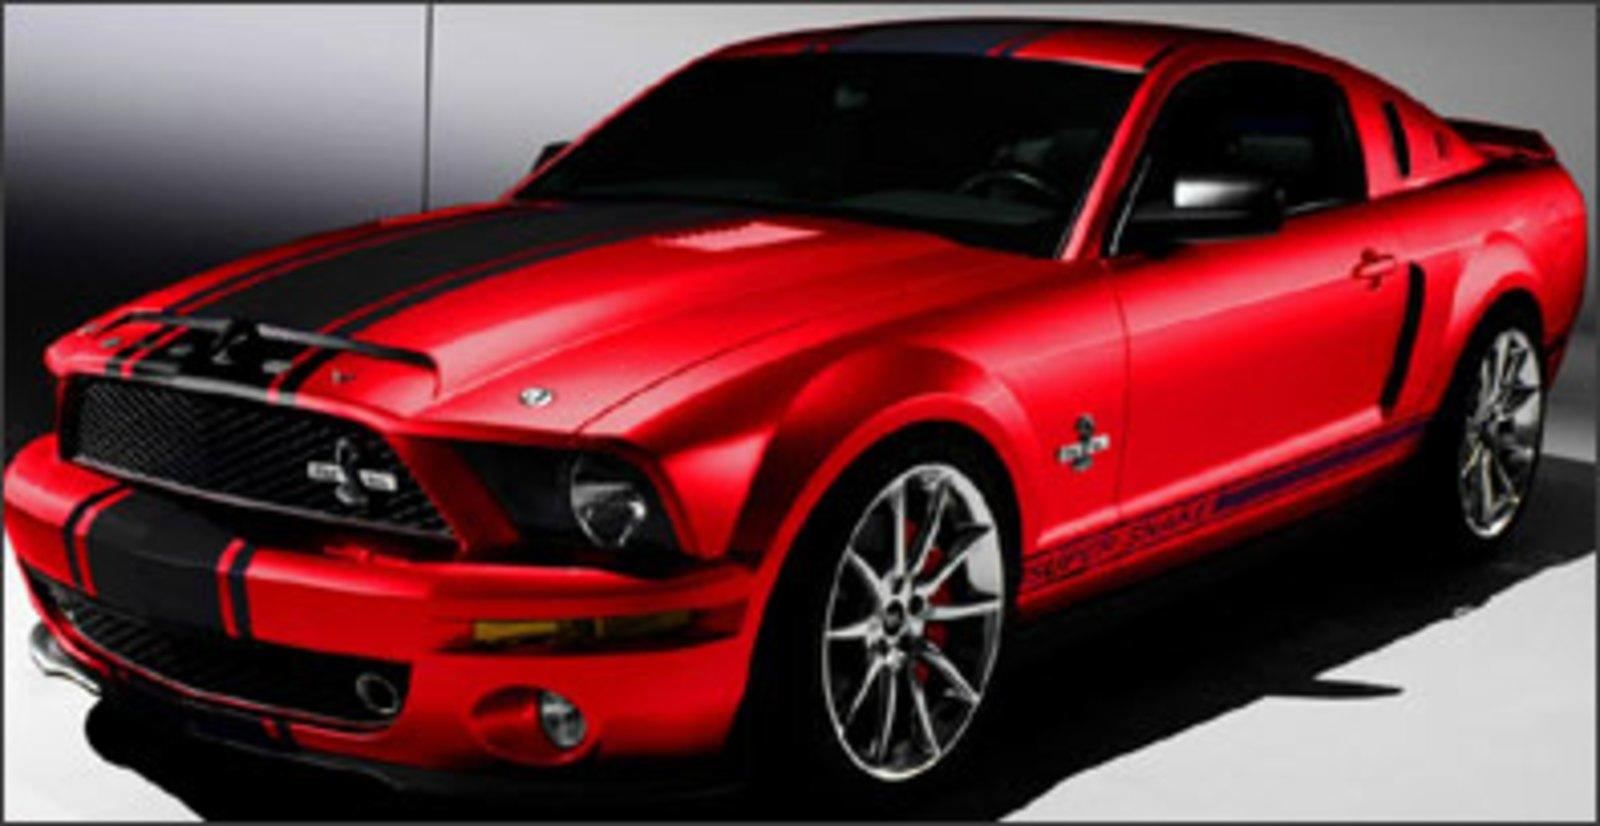 2007 ford shelby gt500 super snakes review top speed. Black Bedroom Furniture Sets. Home Design Ideas